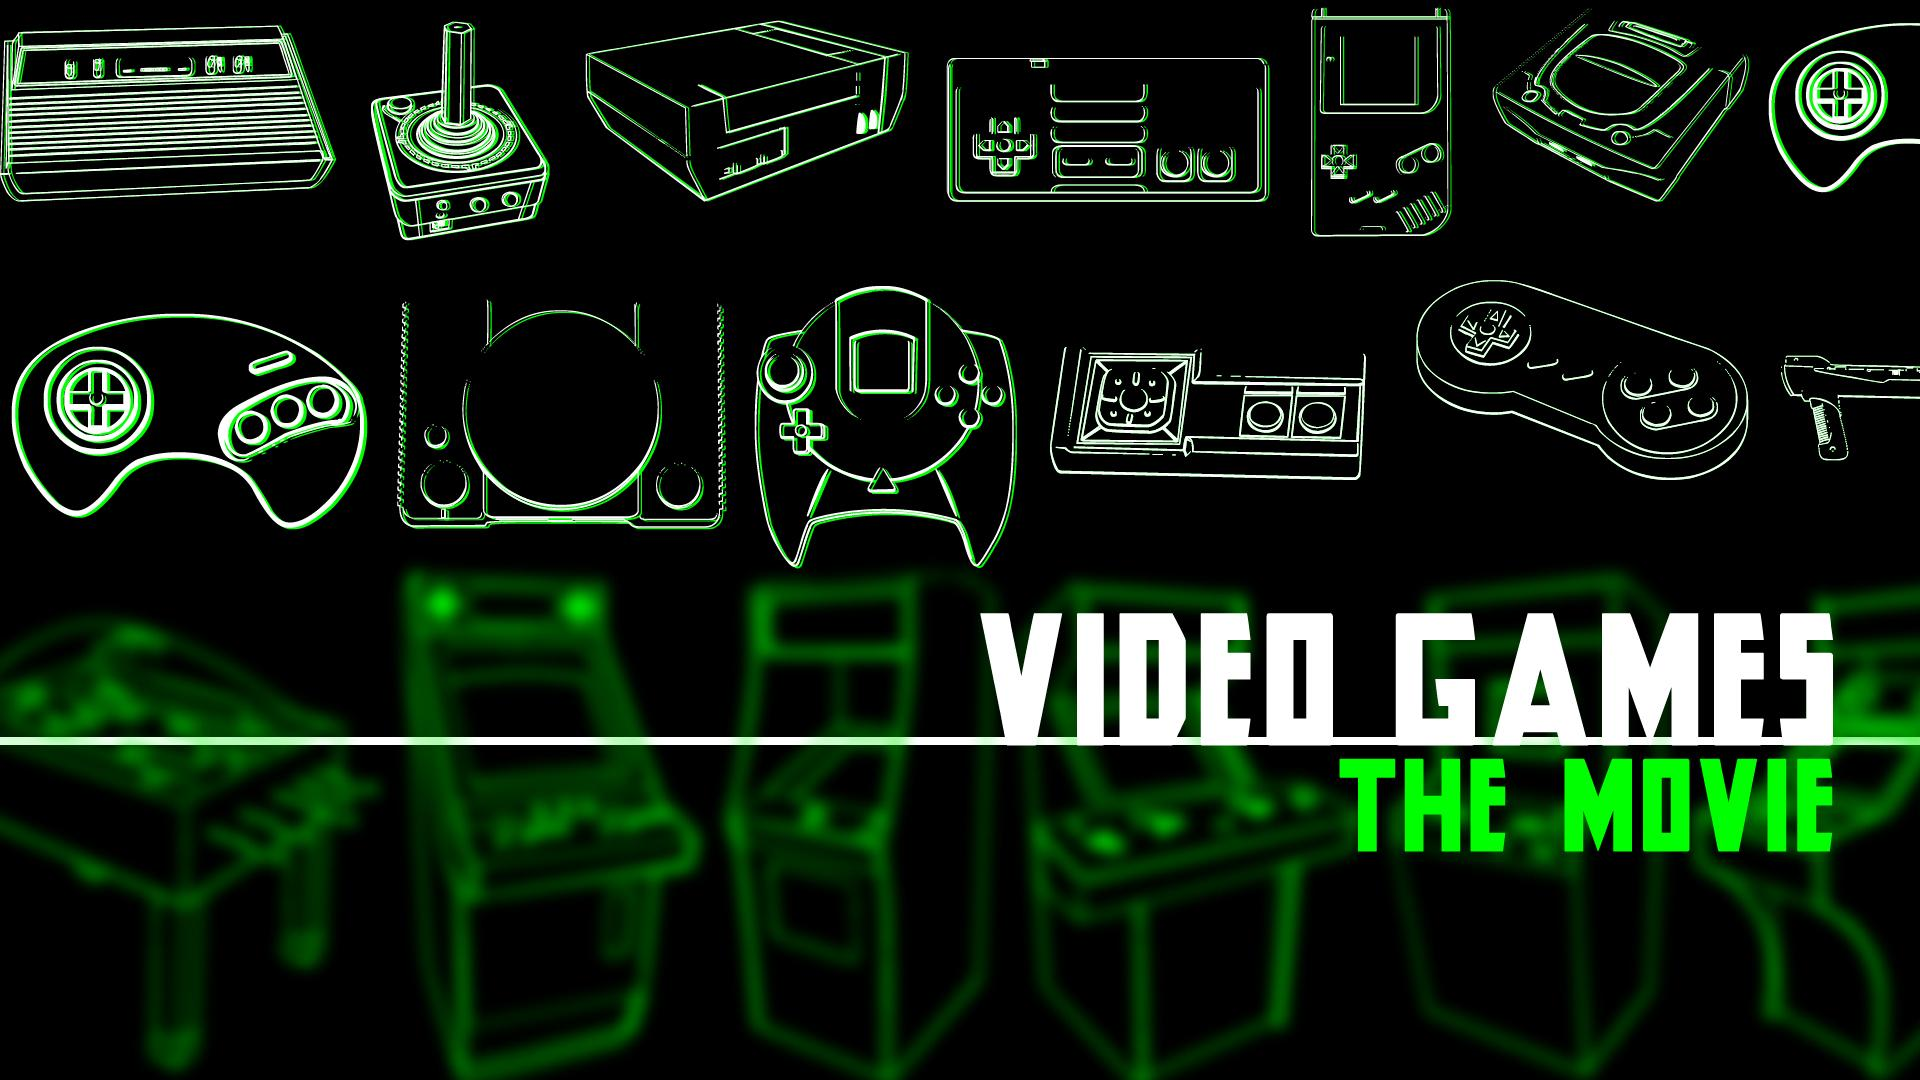 Music Licensing: Songs Needed for Features on Popular Video Games